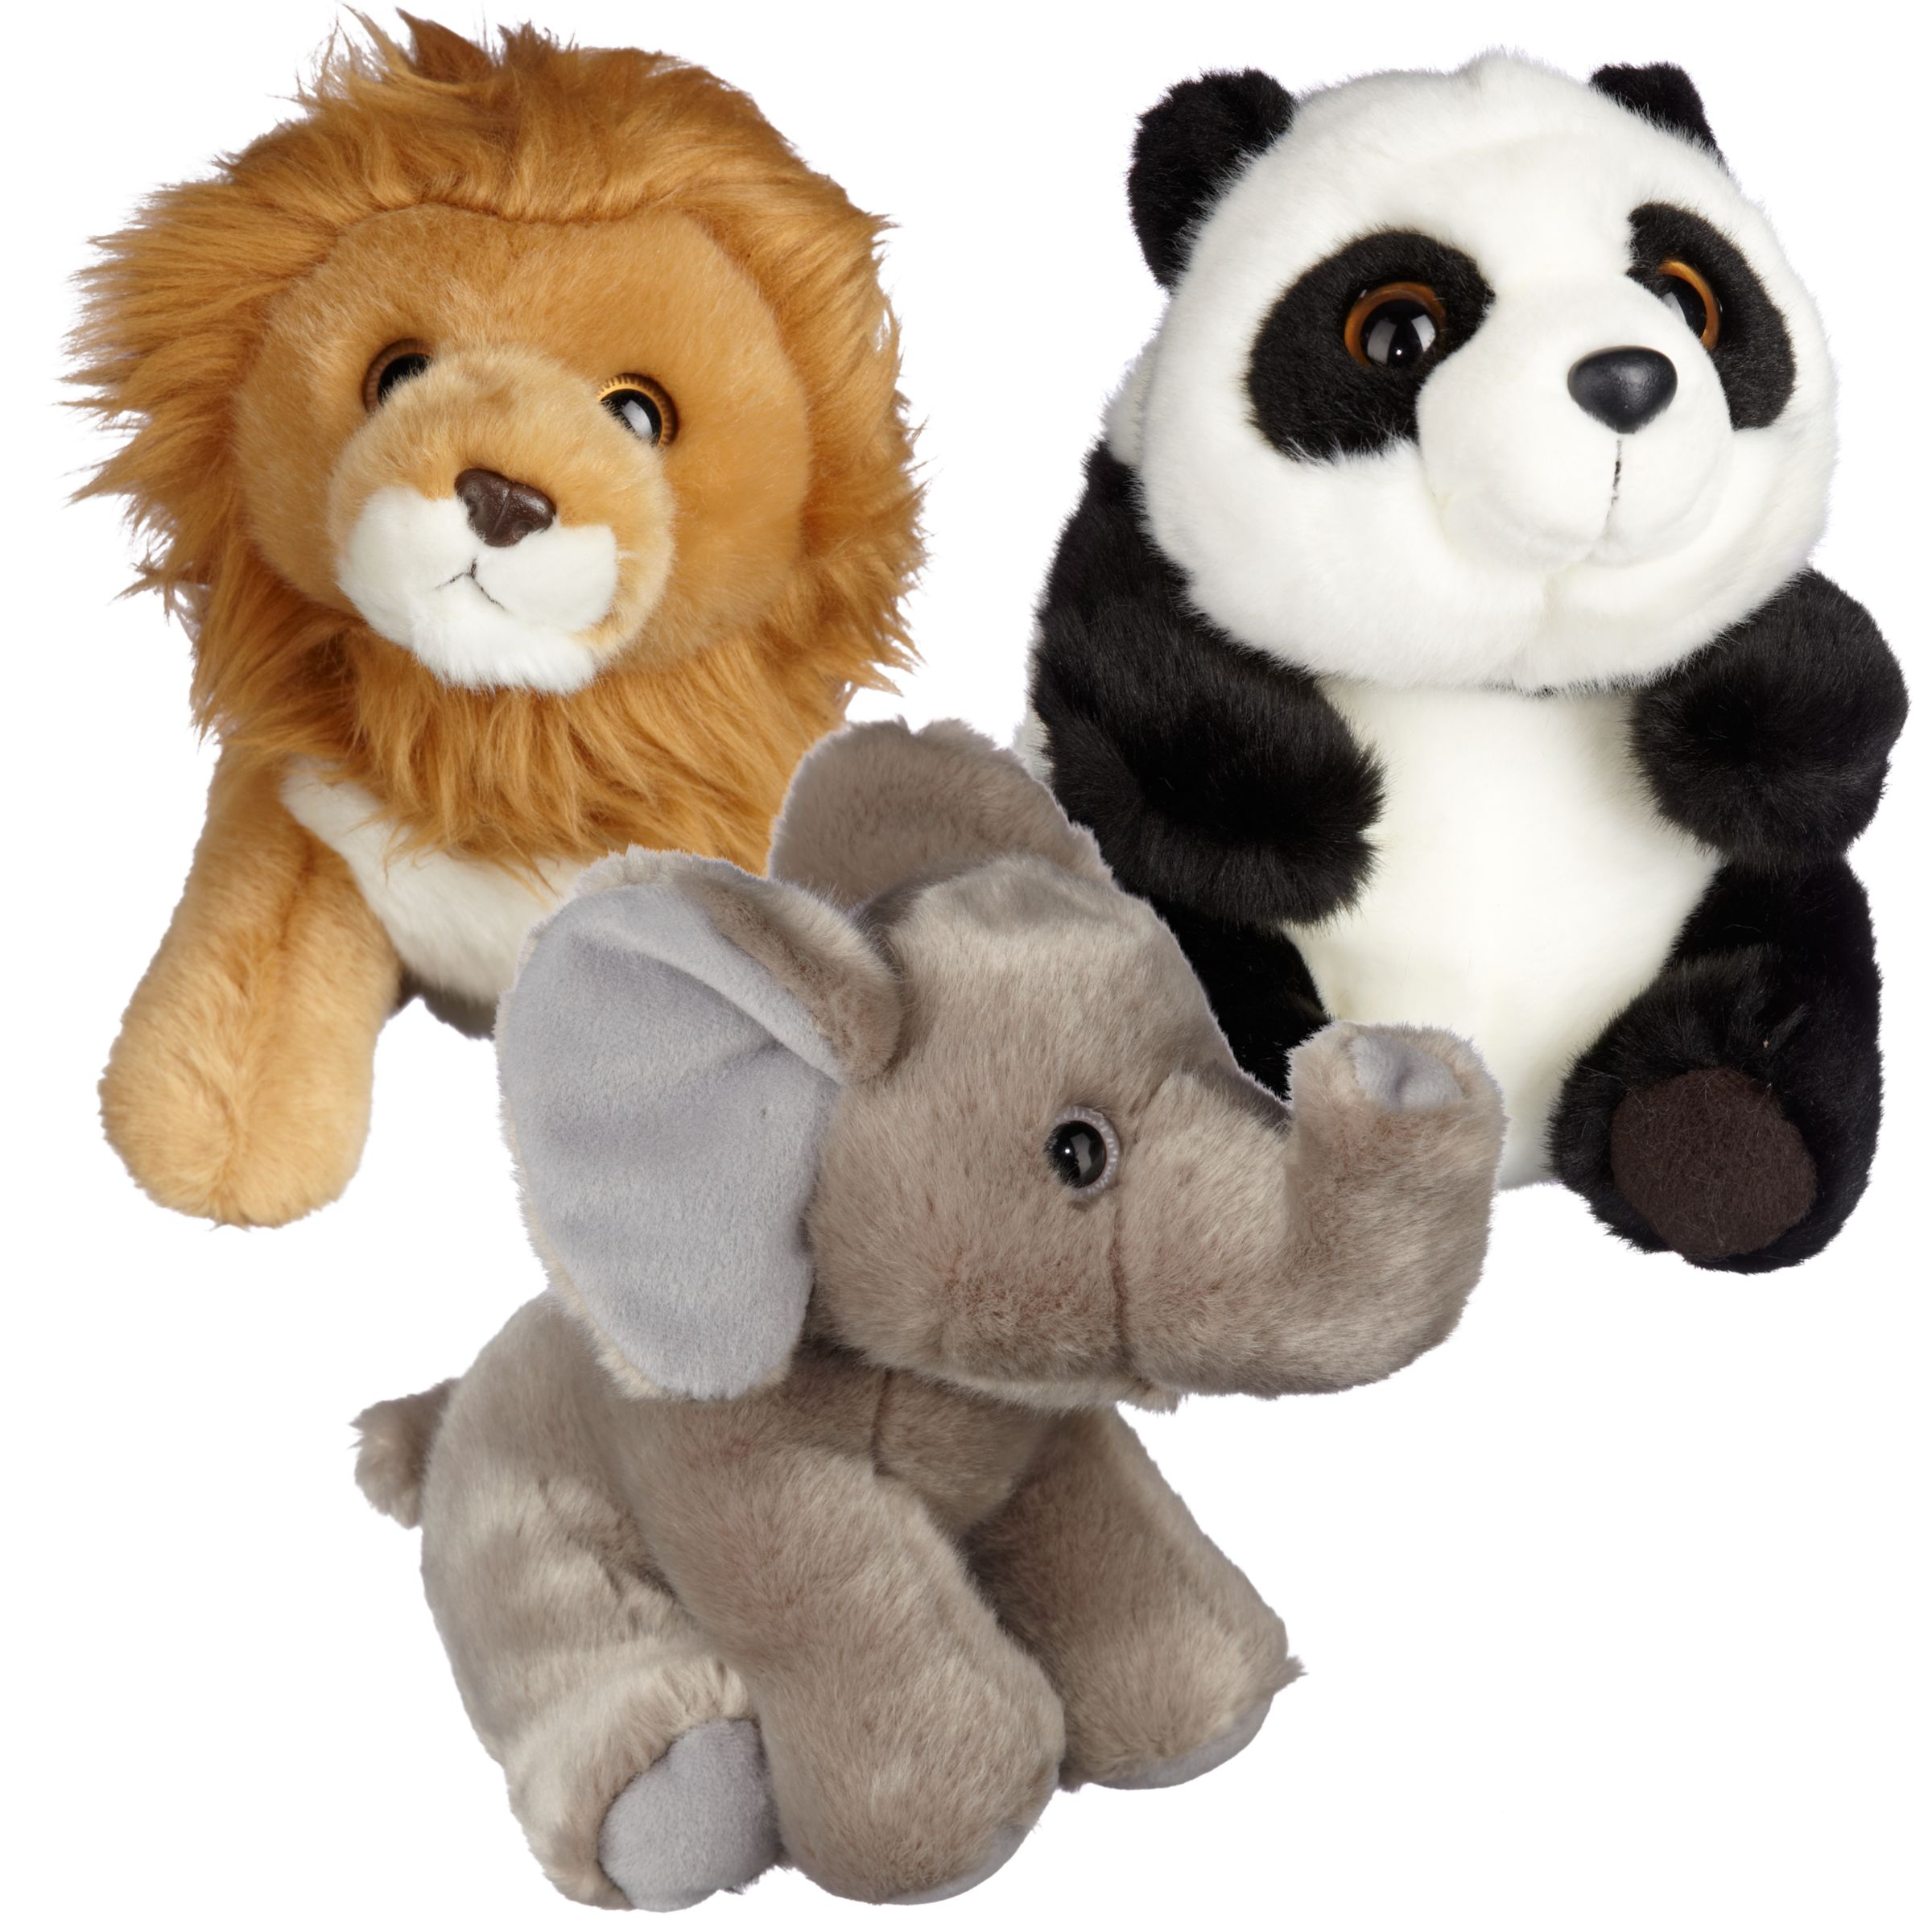 "John Lewis Cuddly Wild Animal 8.5"" Soft Toy, Assorted"